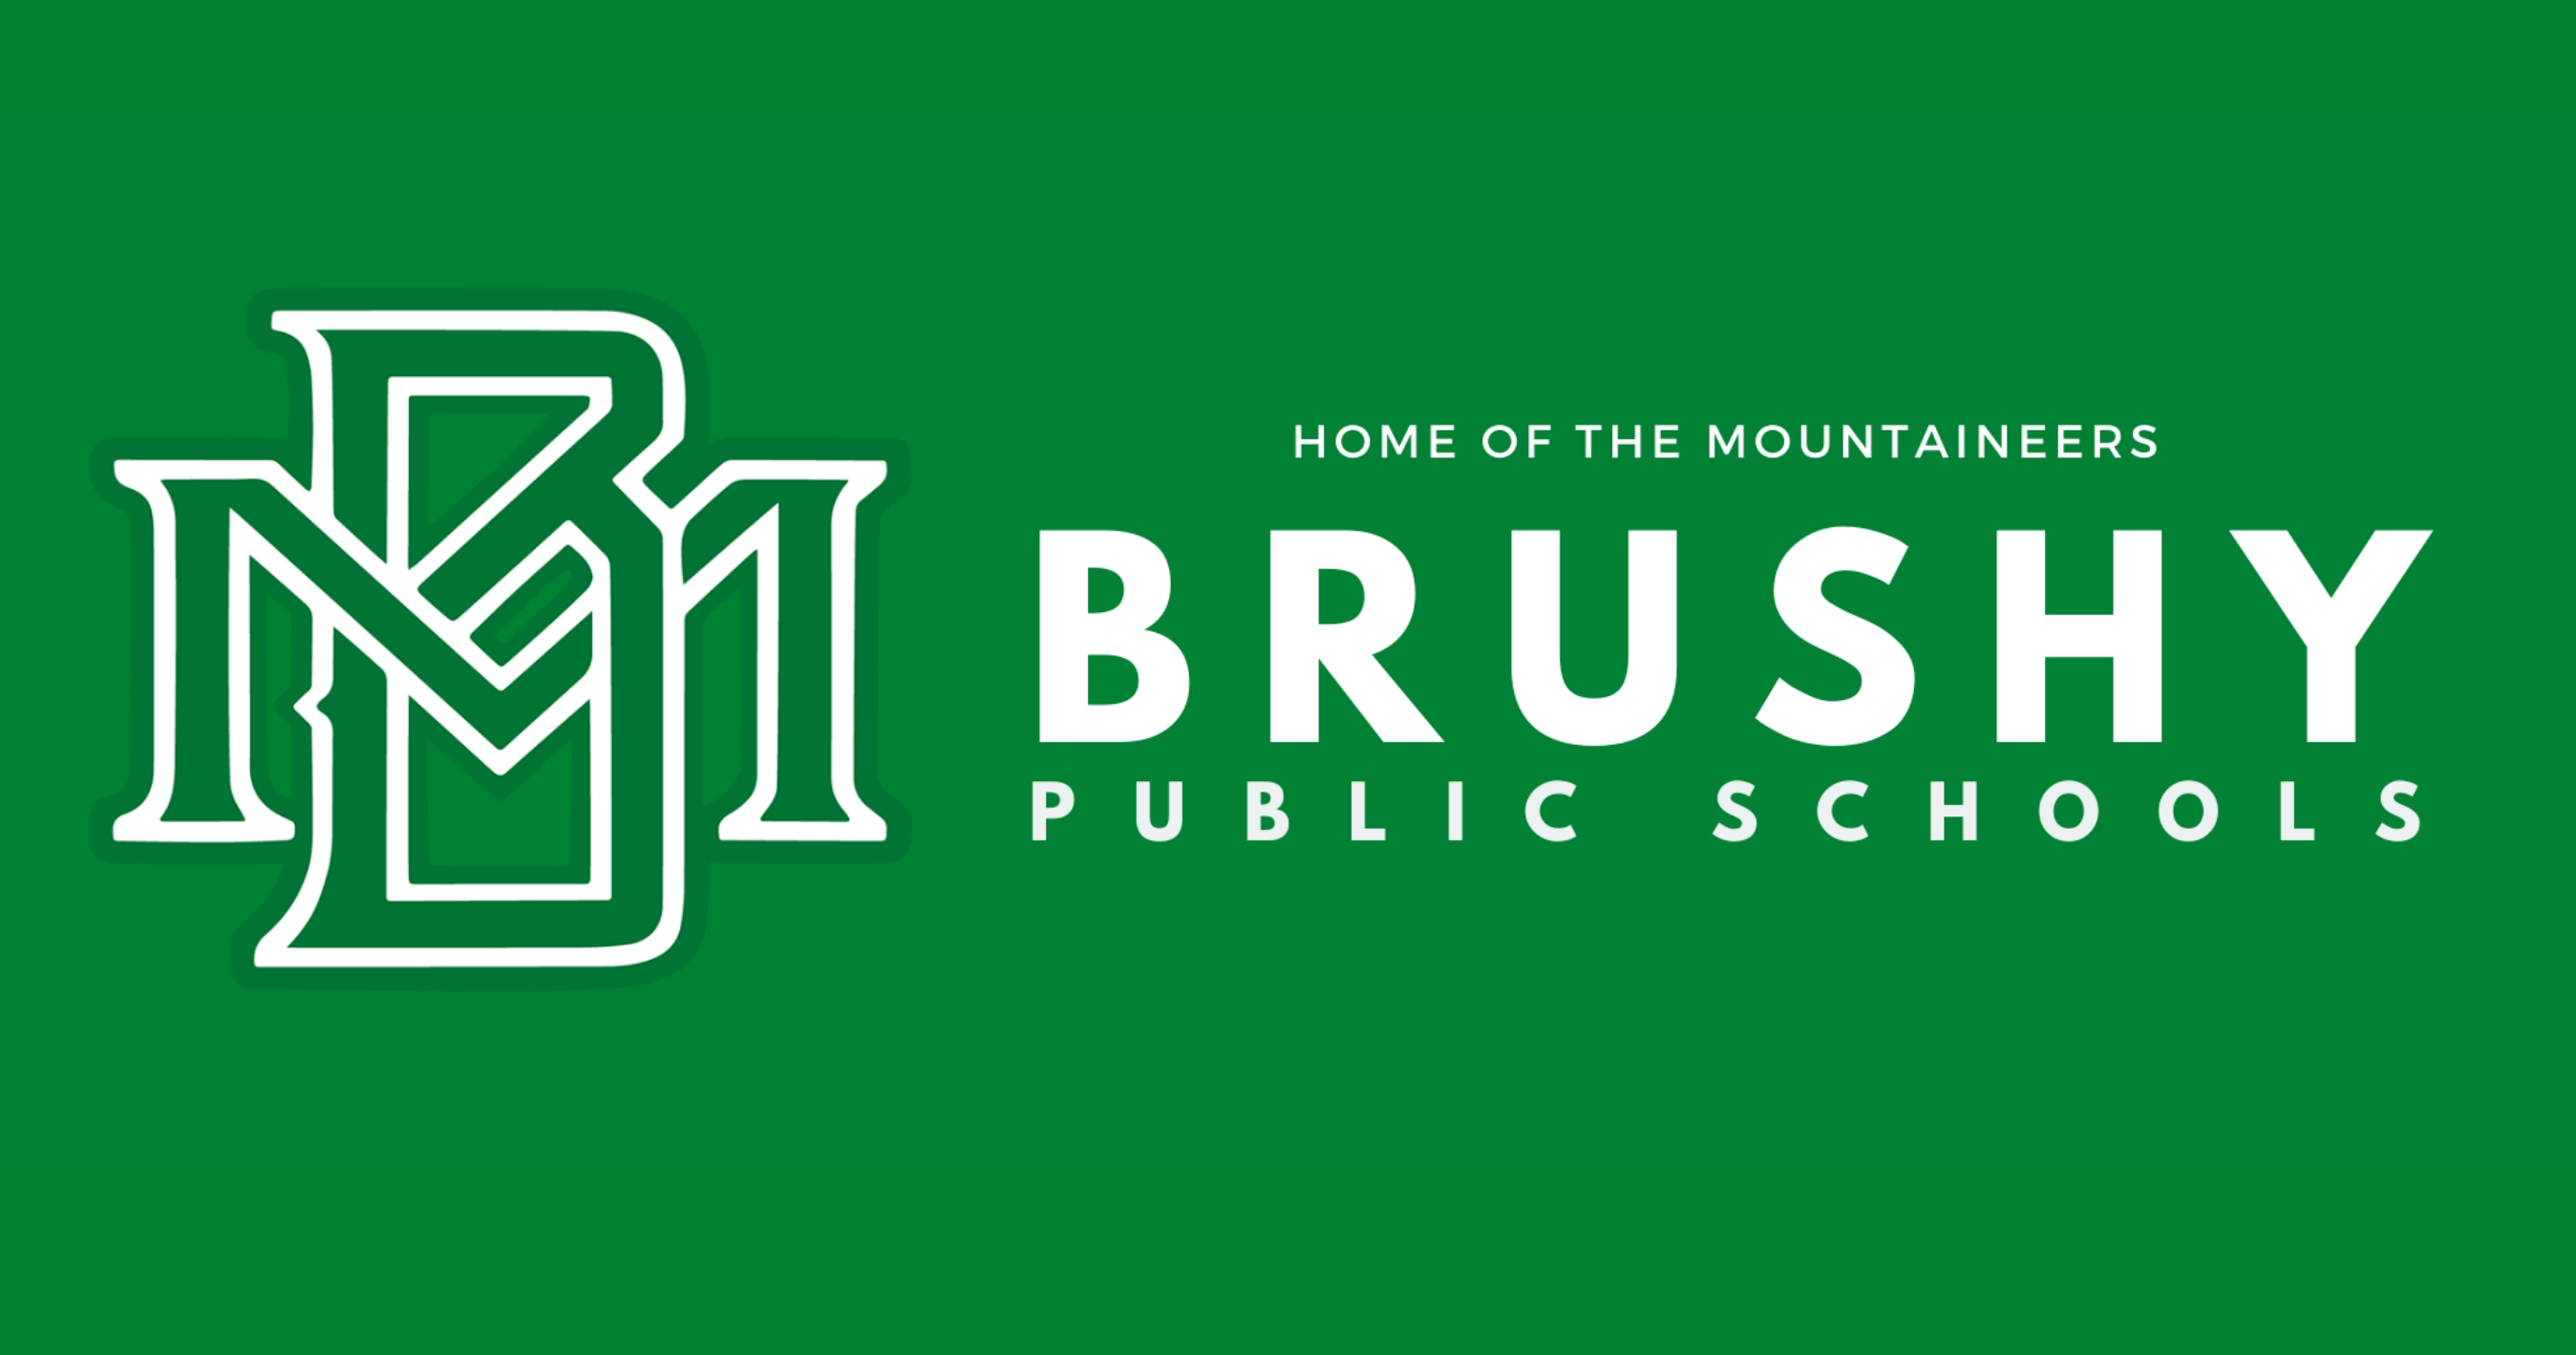 Home of the Mountaineers Brushy Public Schools